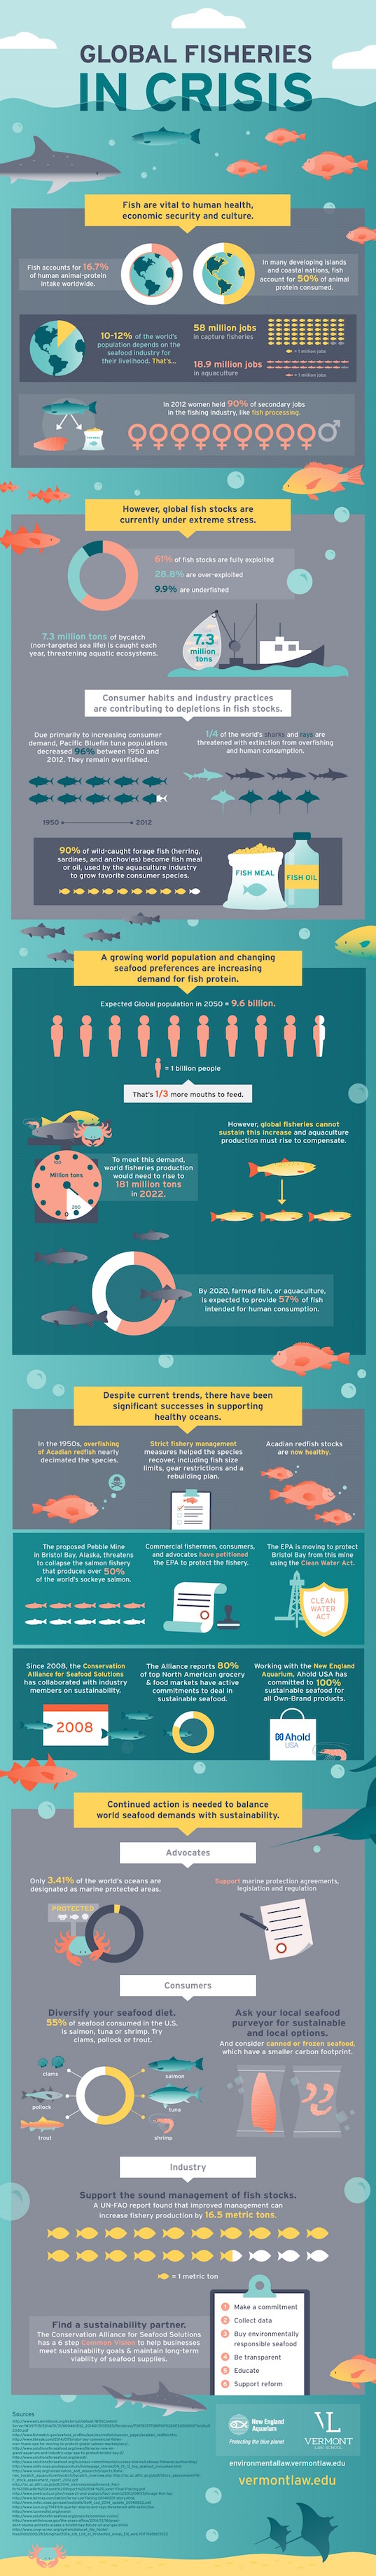 global fisheries, unsustainable fishing, vermont law school, fisheries in crisis, seafood industry, reader submitted content, infographic